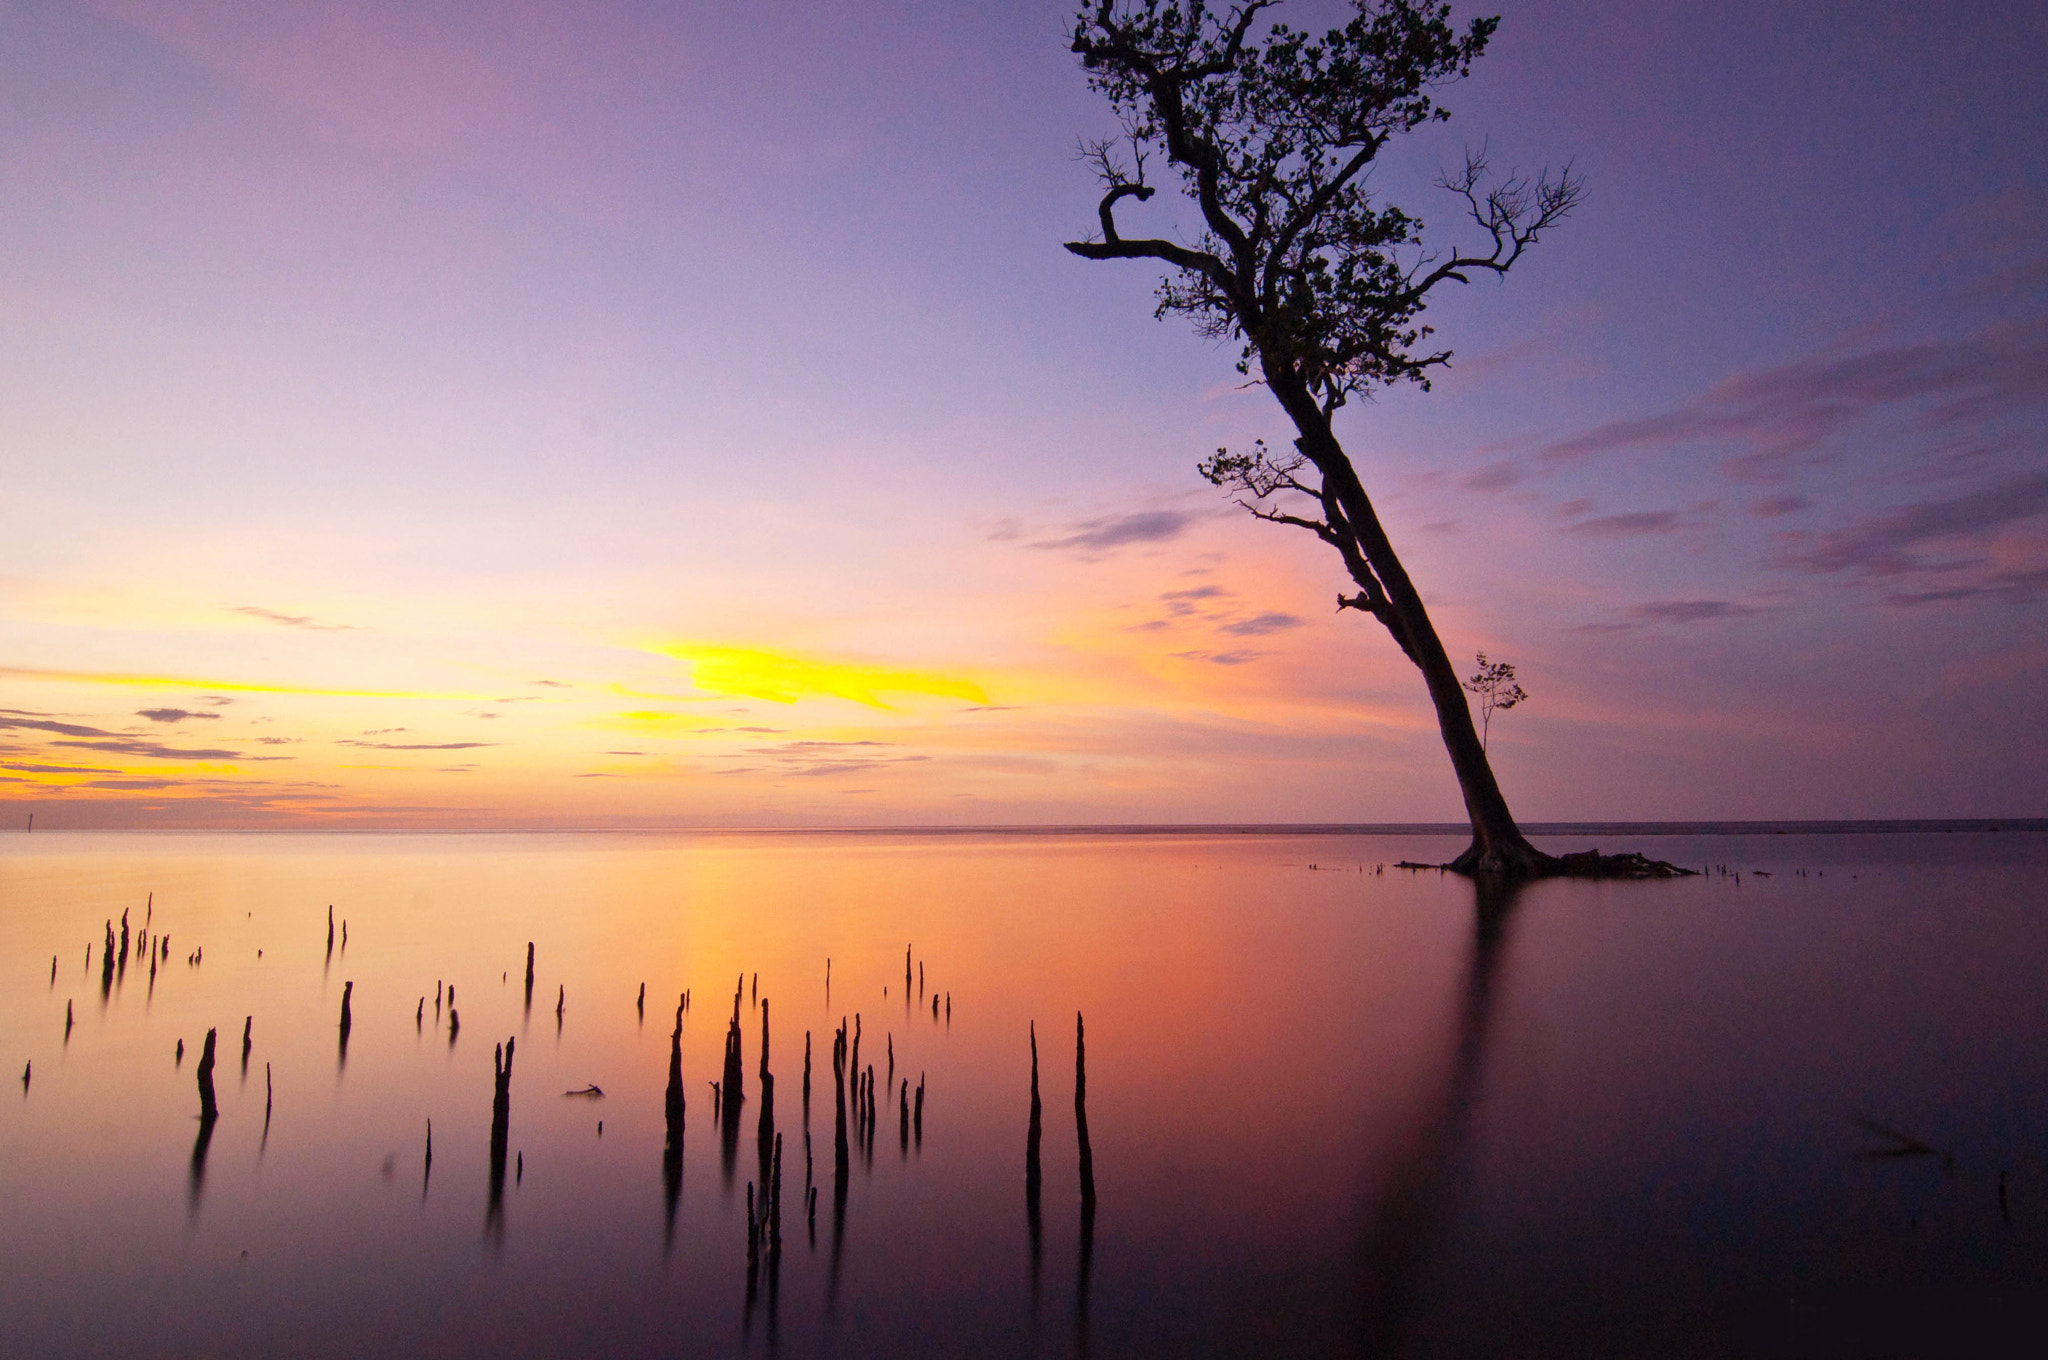 Photograph Holiday's Sunset by jerry suello on 500px